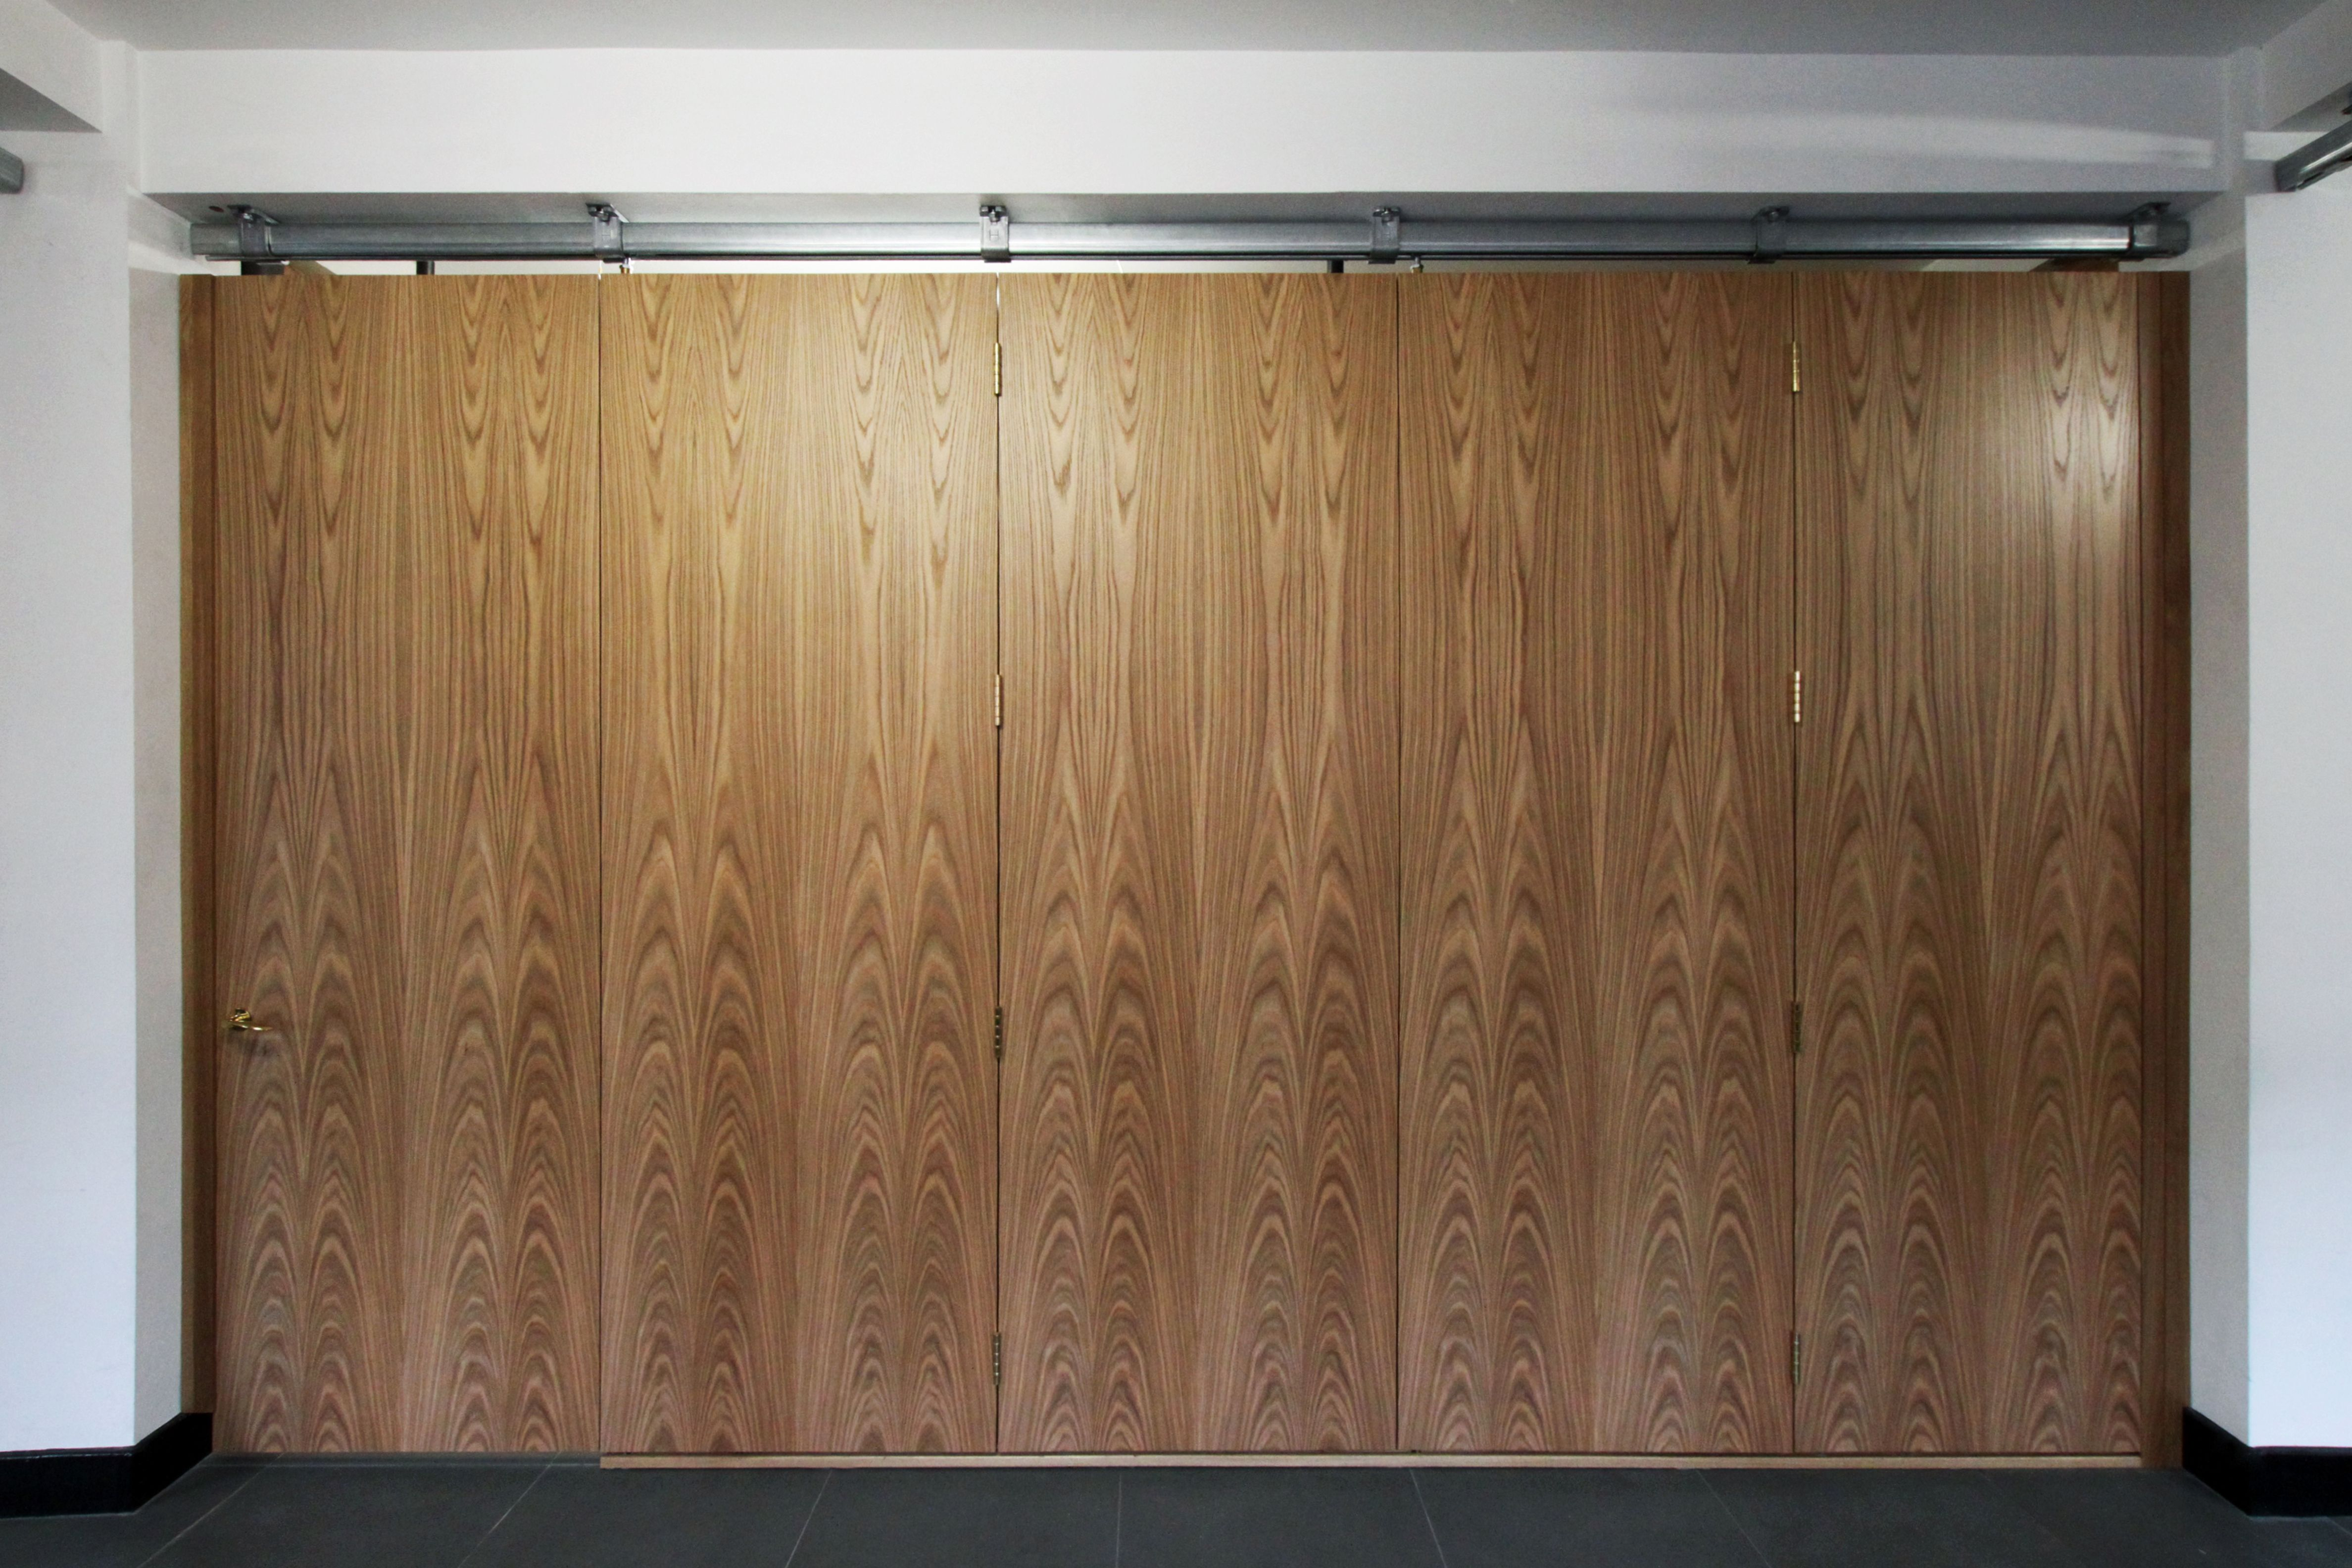 Floor to ceiling oak veneer room dividers with partition for Commercial room dividers sliding